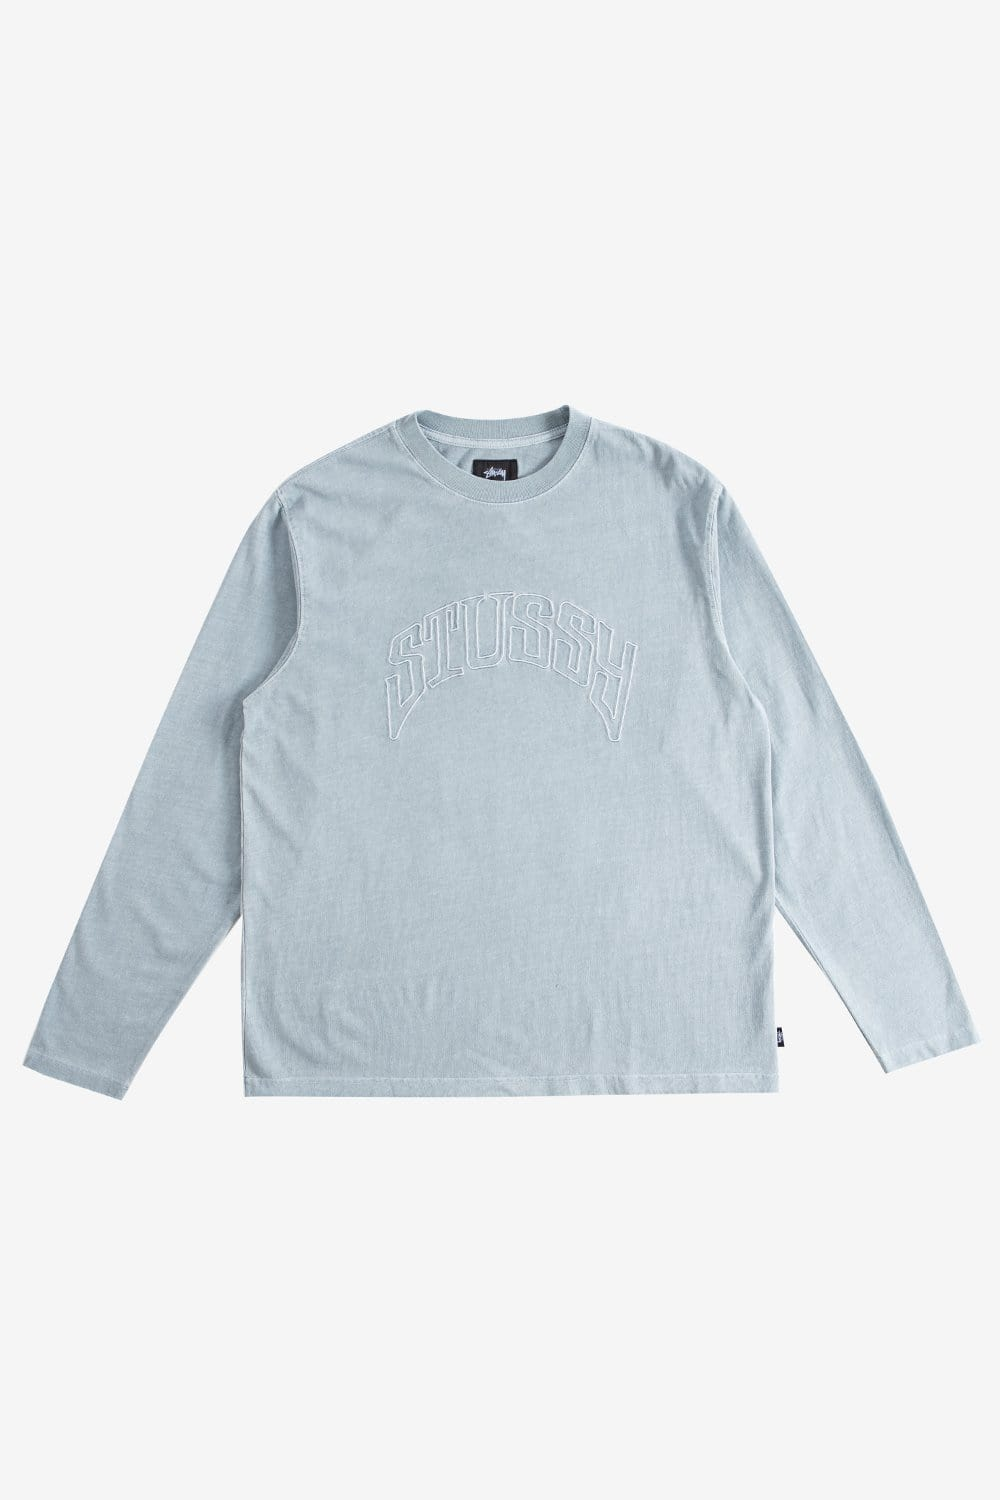 Stussy Apparel Arch Long Sleeve Shirt